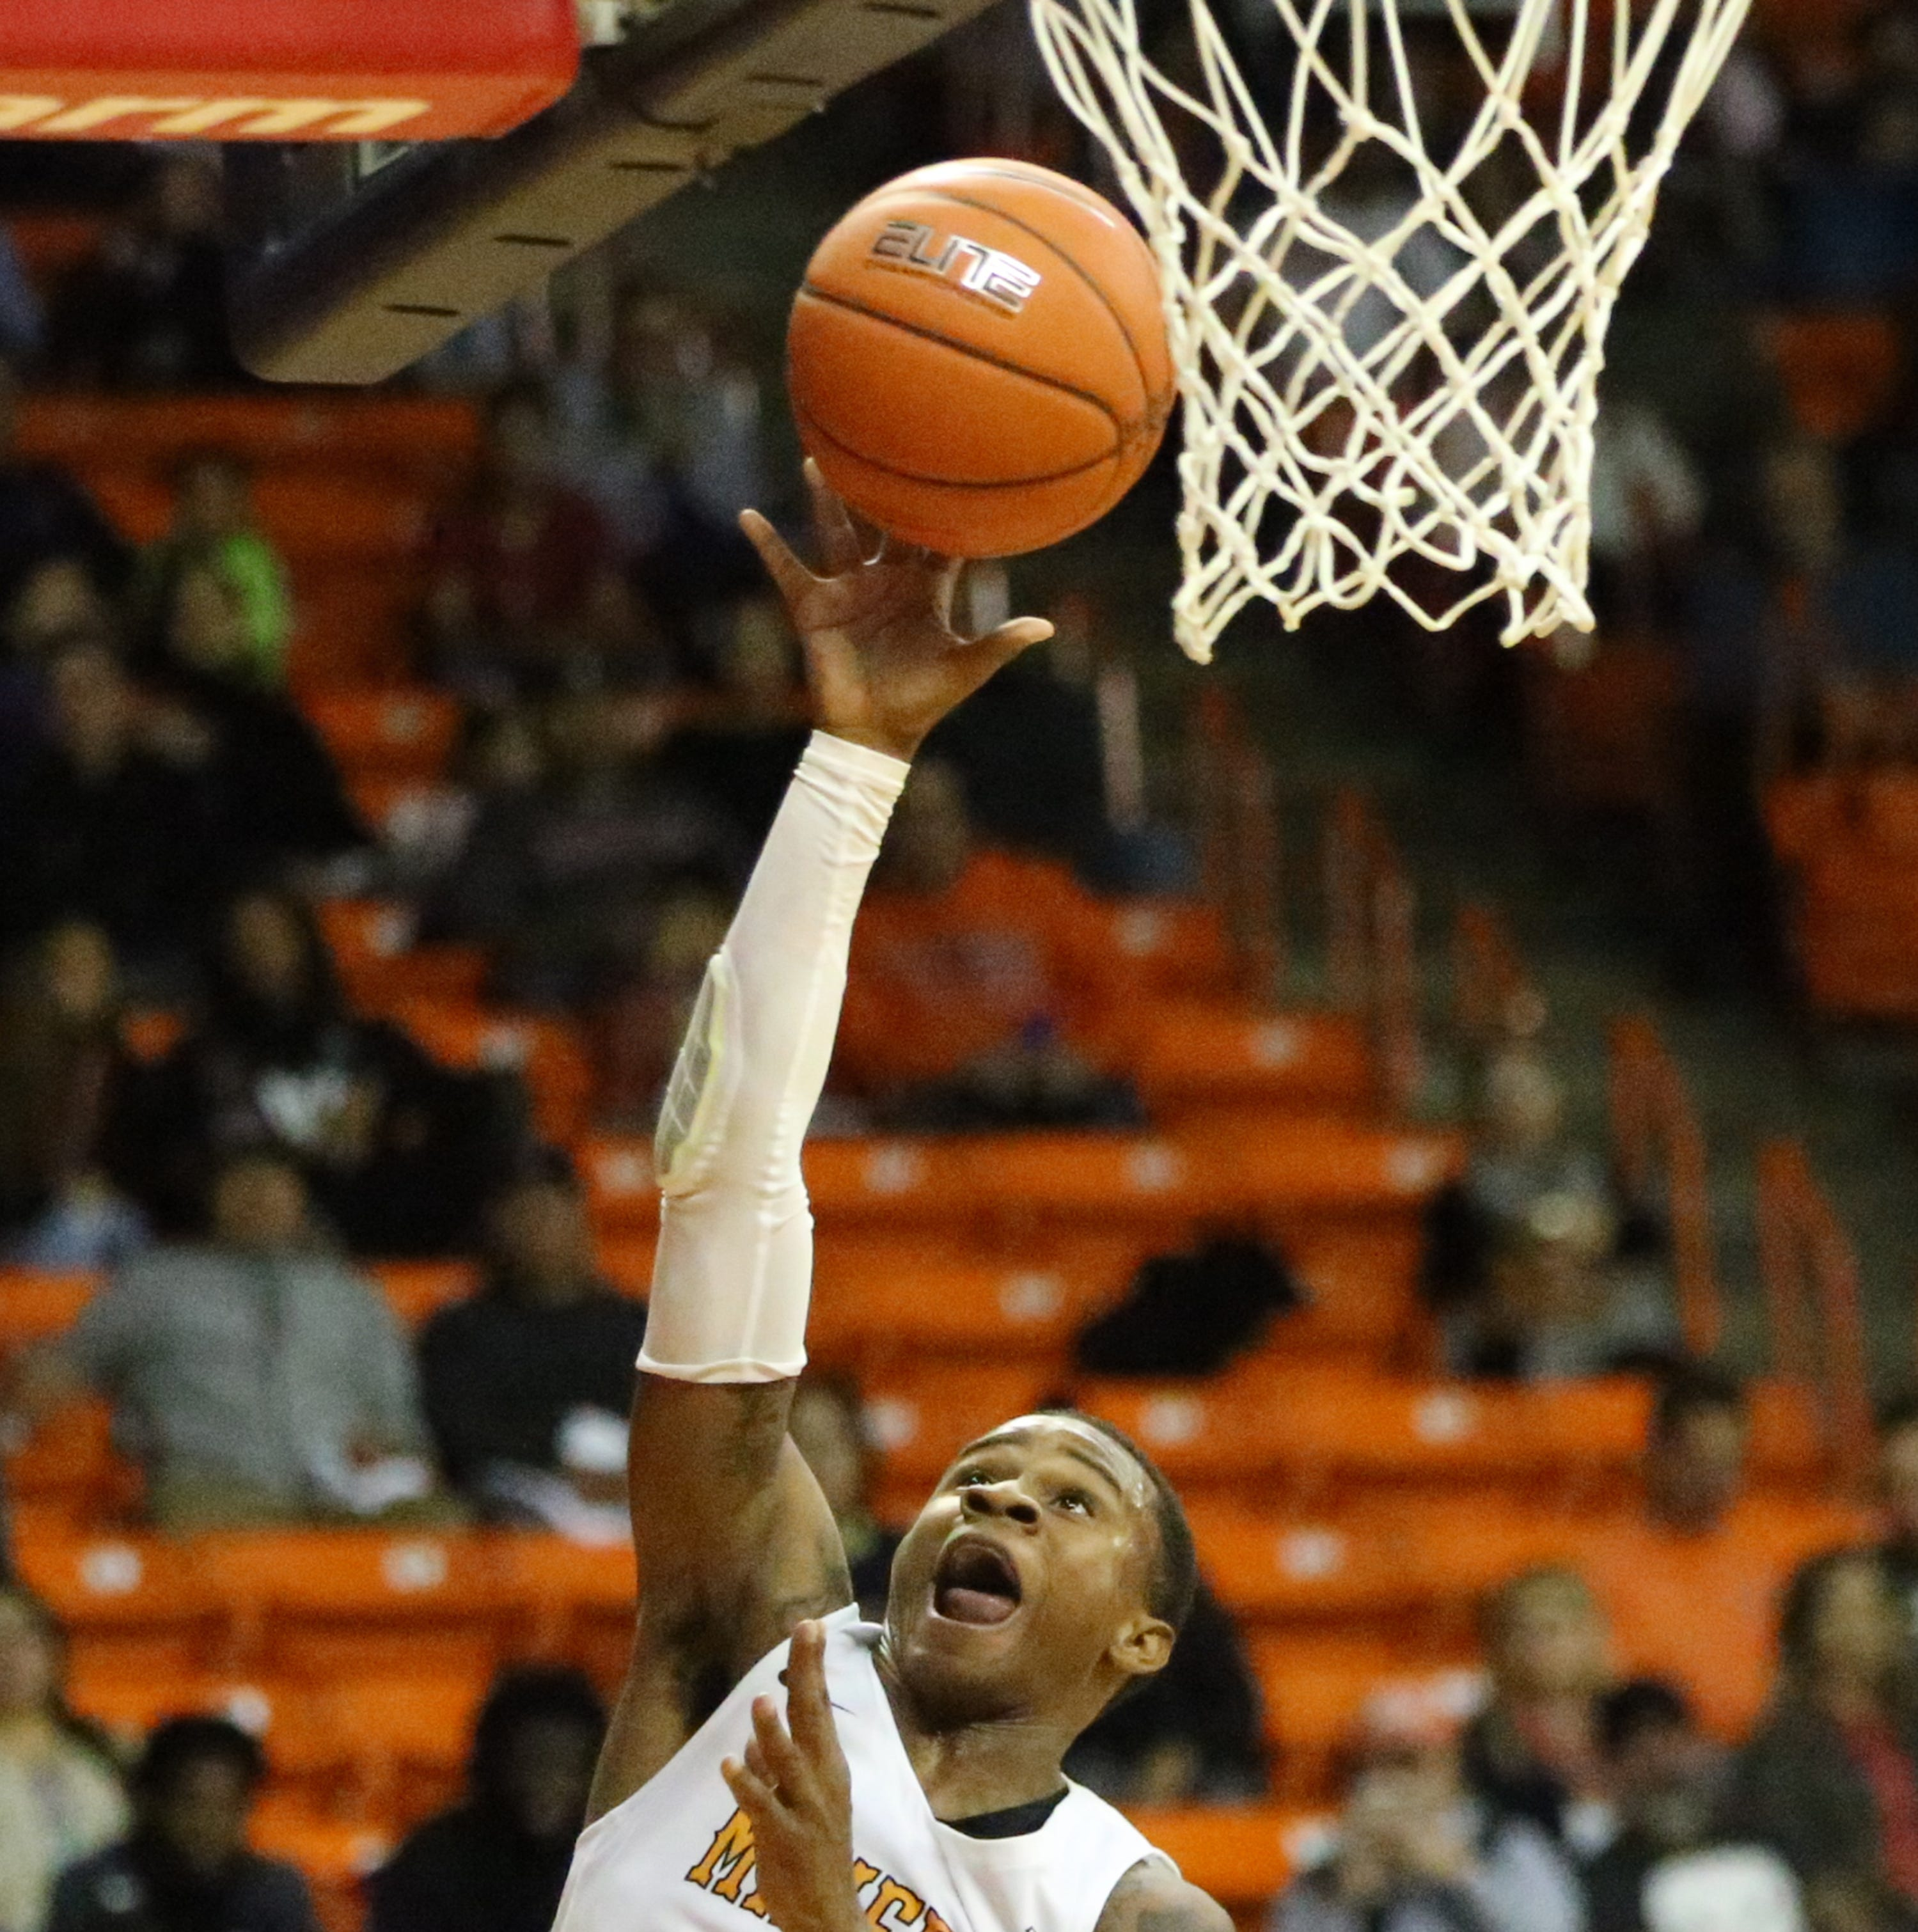 UTEP transfer commits to New Mexico State